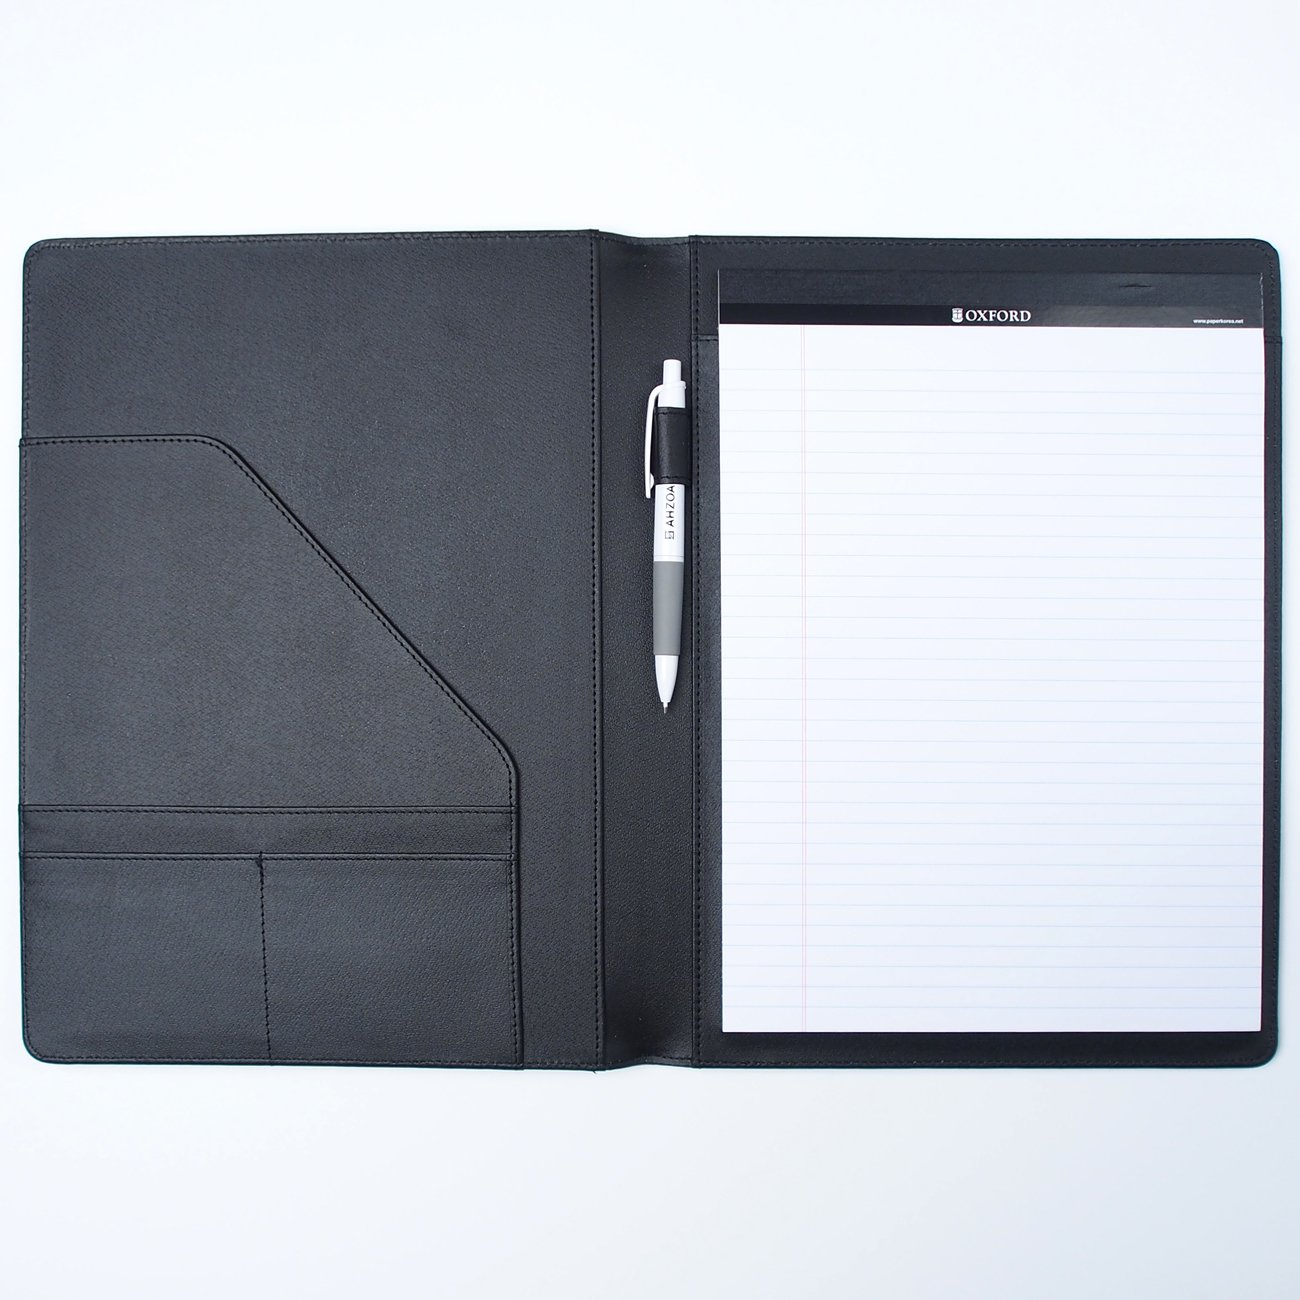 AHZOA 4 Pockets A4 Size Memo Padfolio S3 with Mechanical Pencil, Including 8.27 X 11.7 inch Legal Writing Pad, Synthetic Leather Handmade 9.84 X 12.99 inch Notepad Clipboard (Black)